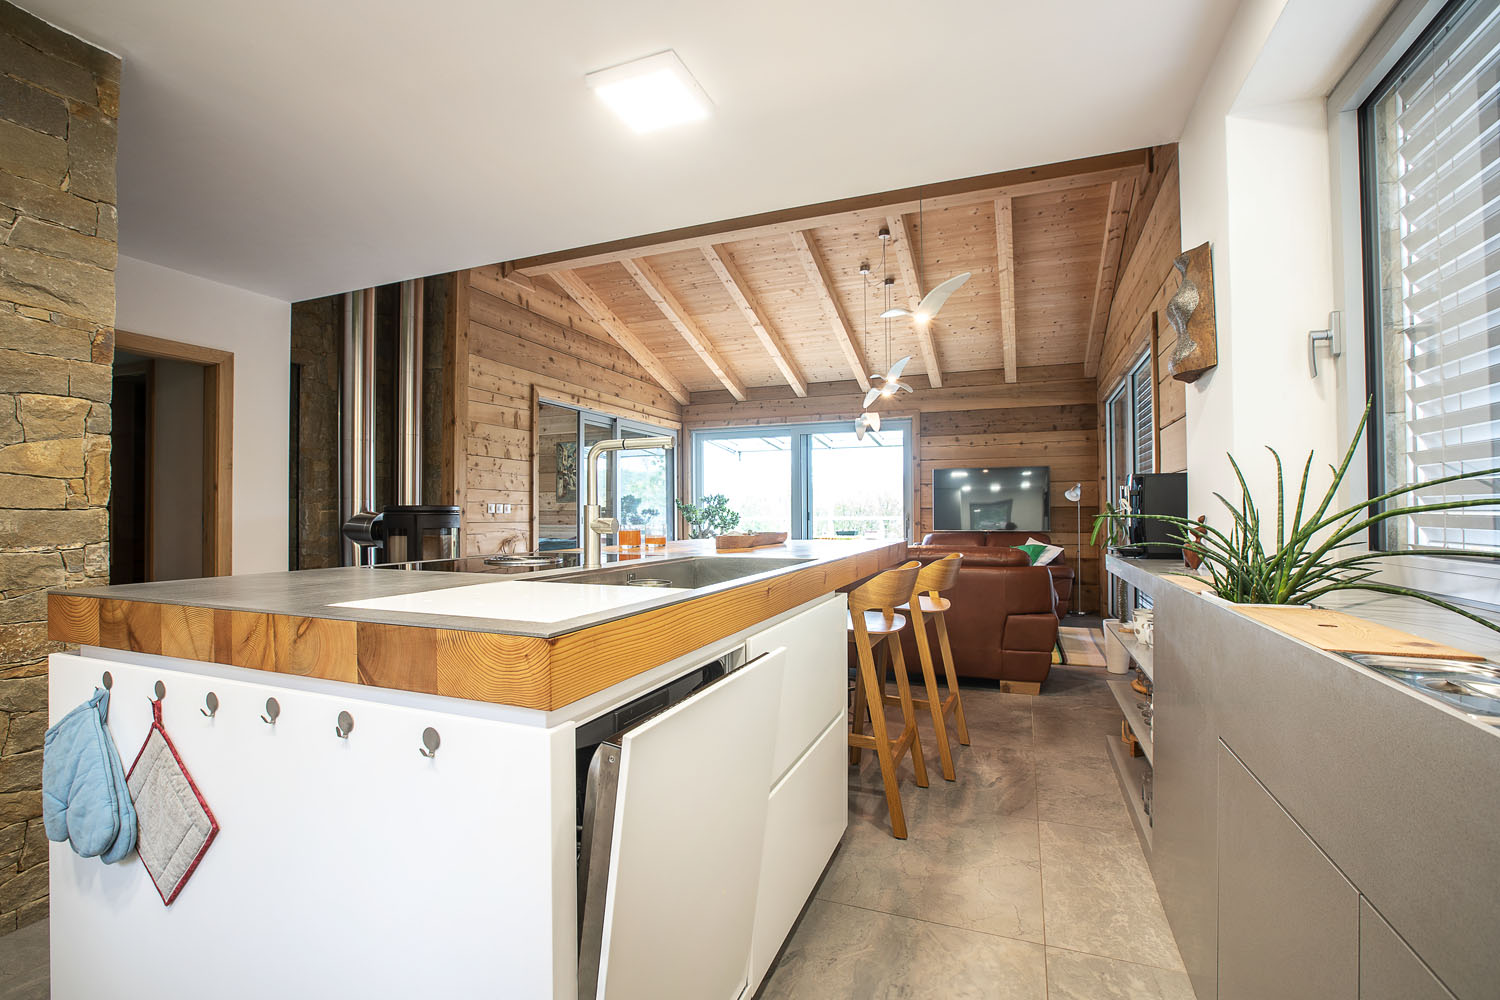 plan 3 kitchens / Weekend house in Osvetimany / Kitchen in the countryside